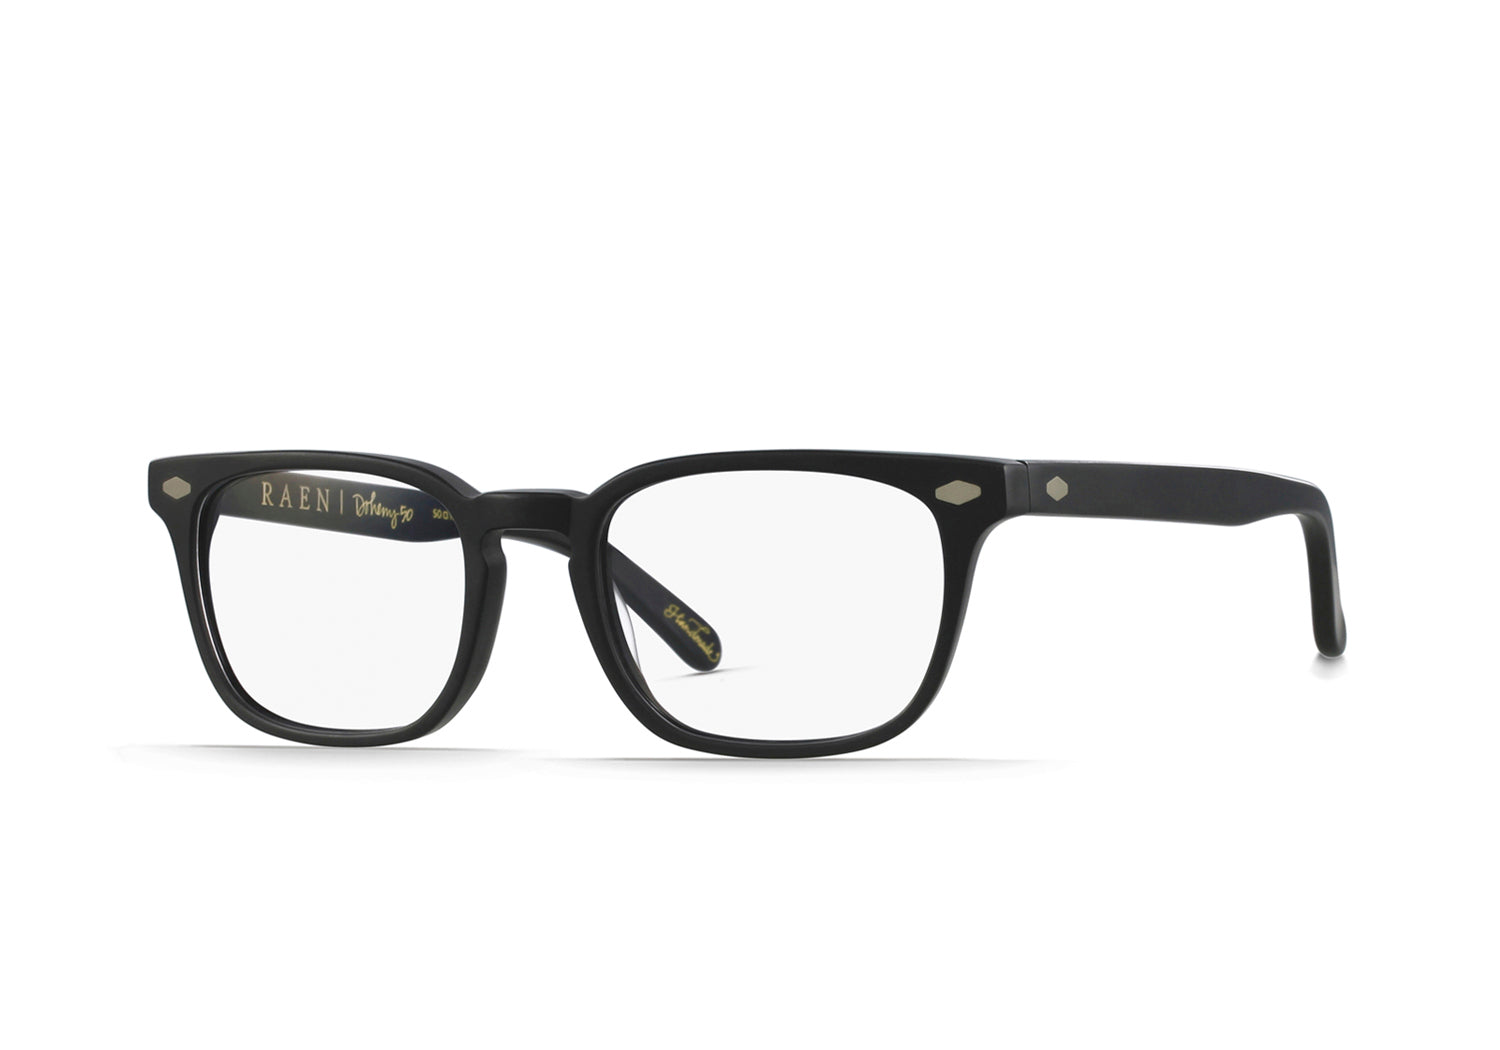 Raen Doheny Prescription Glasses